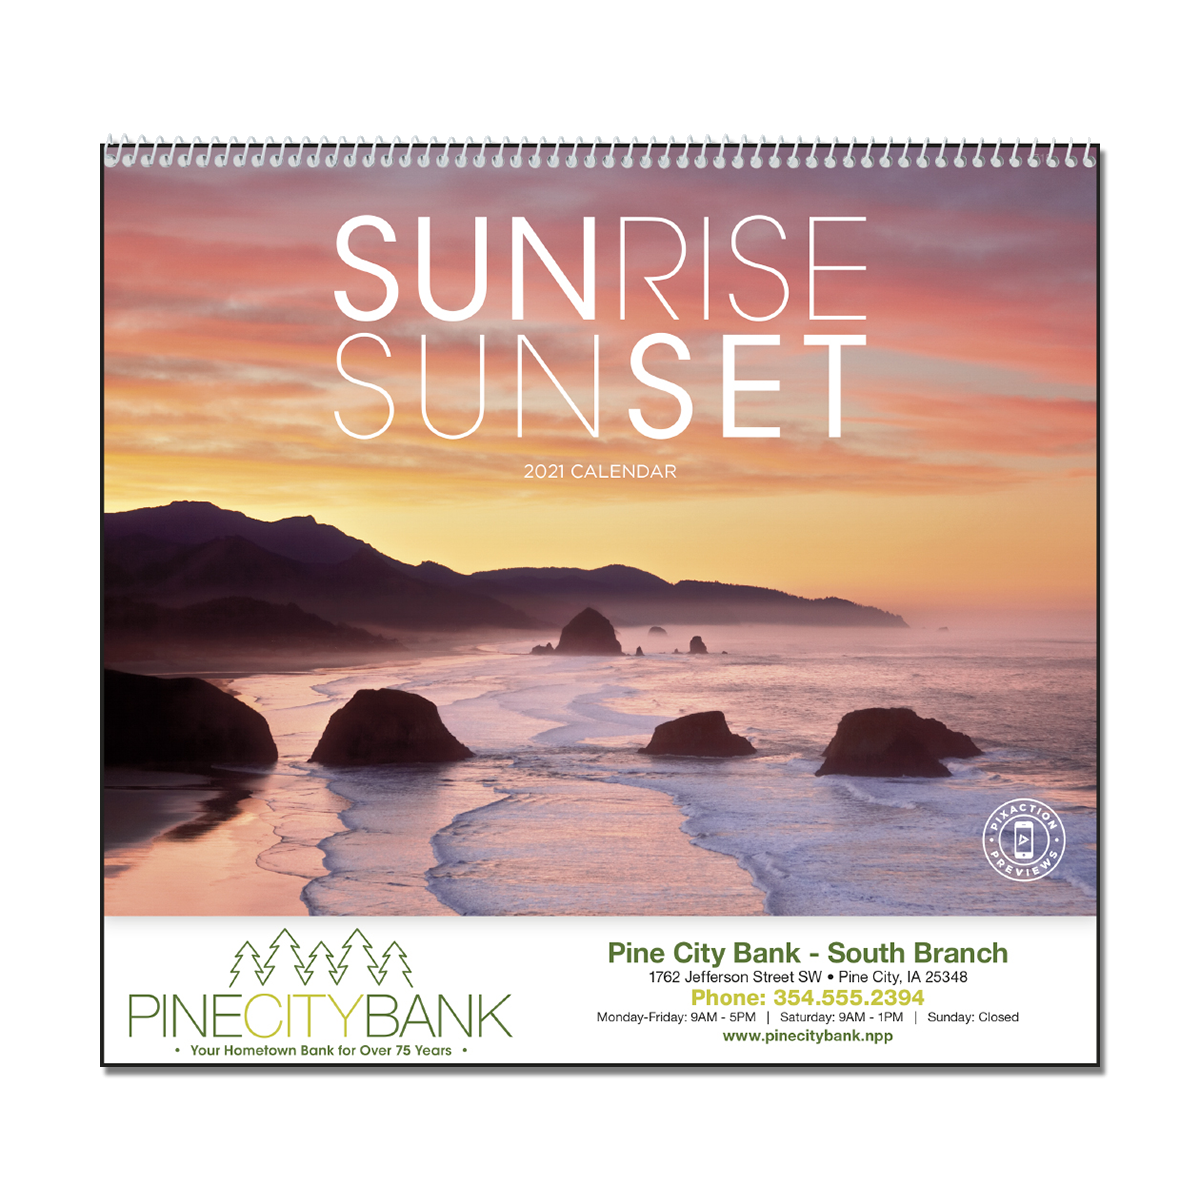 Sunrise Sunset Wall Calendar Throughout Sunrise And Sunset Calendar 2021